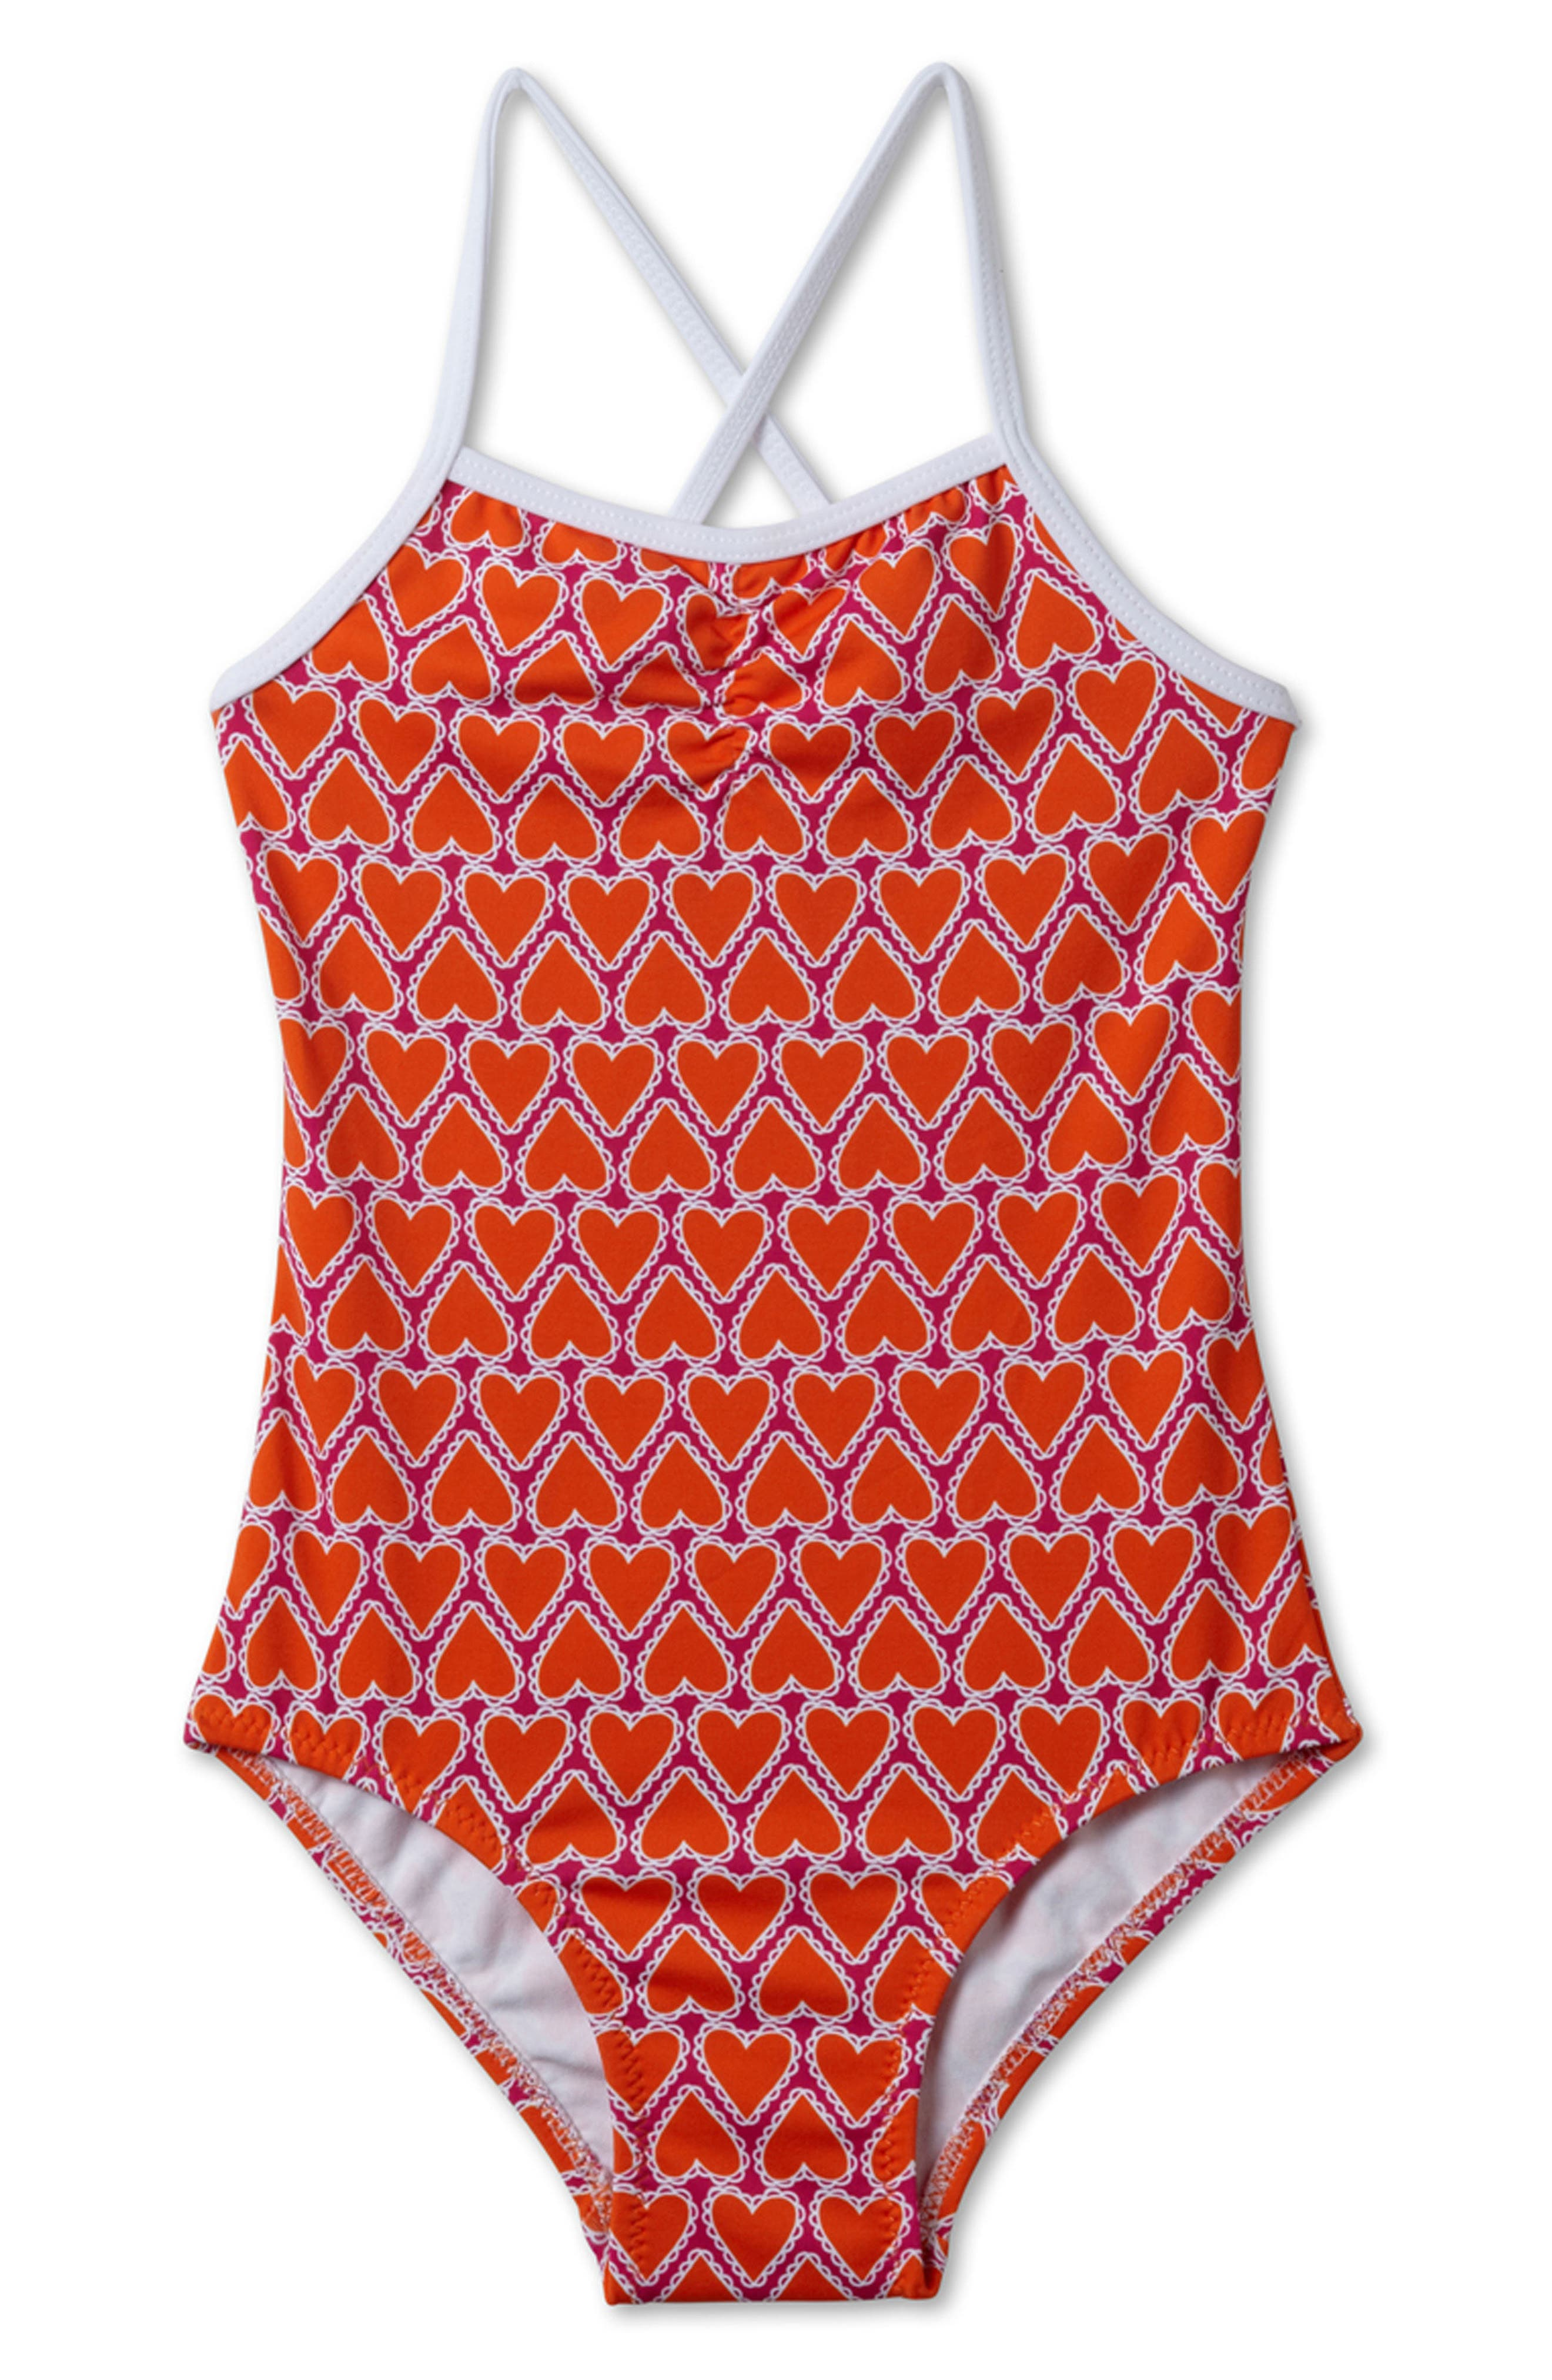 Alternate Image 1 Selected - Stella Cove Heart Print One-Piece Swimsuit (Toddler Girls & Little Girls)